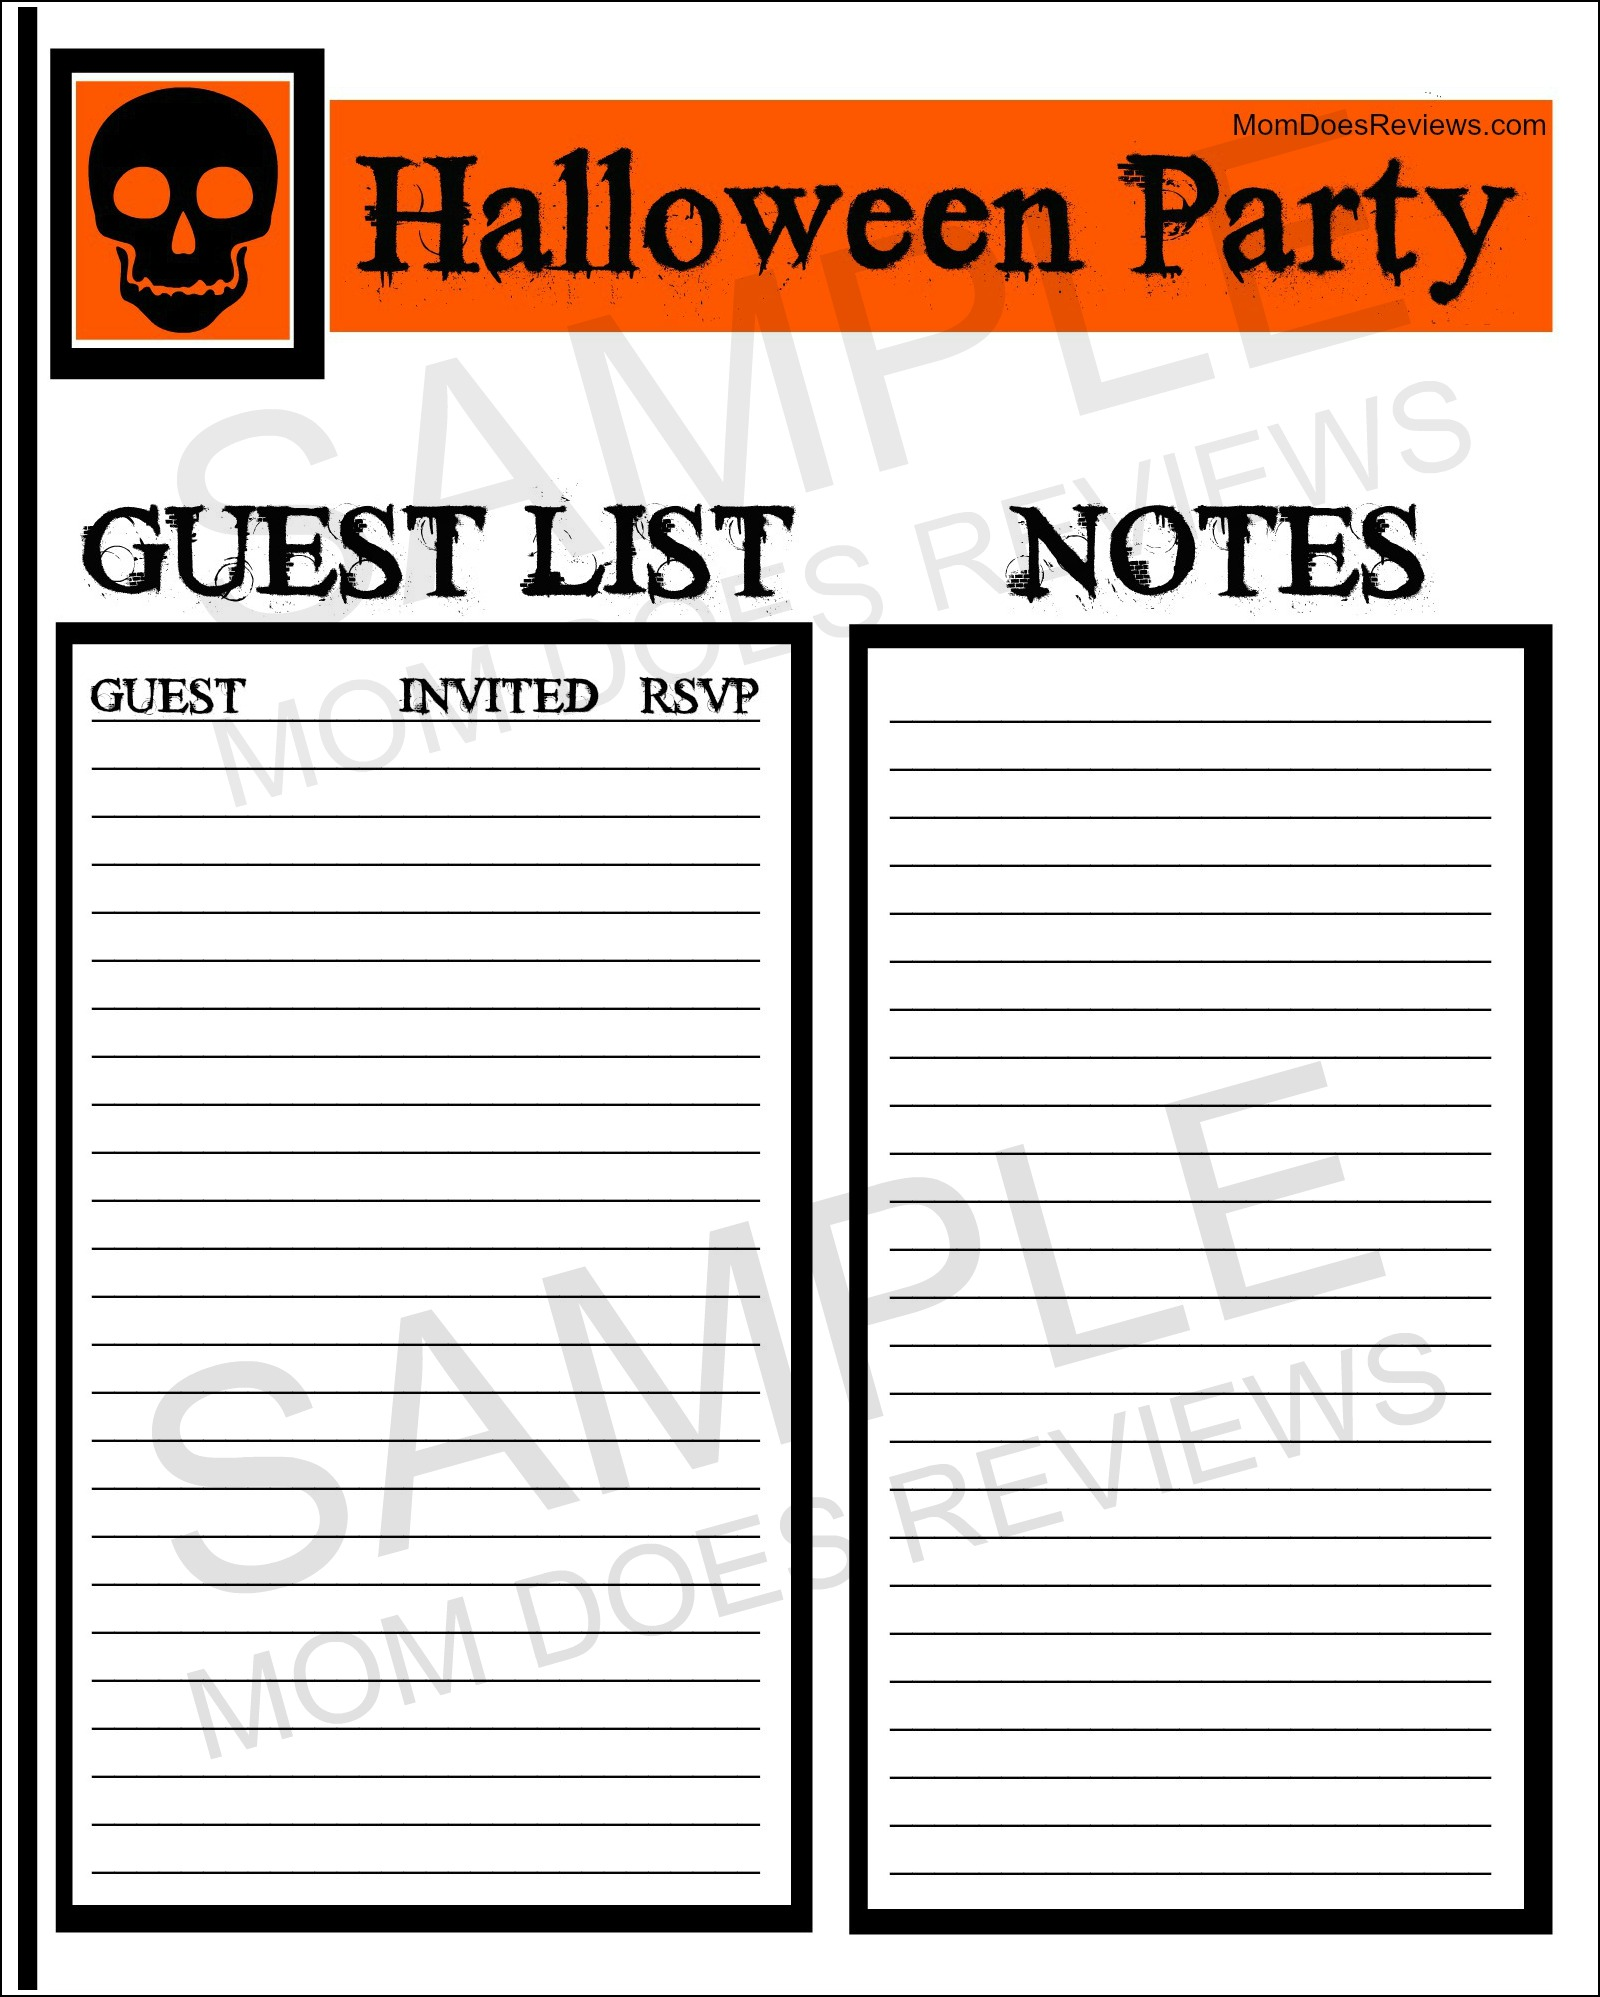 Free Halloween Party Printables from Mom Does Reviews | Free Halloween Party Planning Sheets #MomDoesReviews